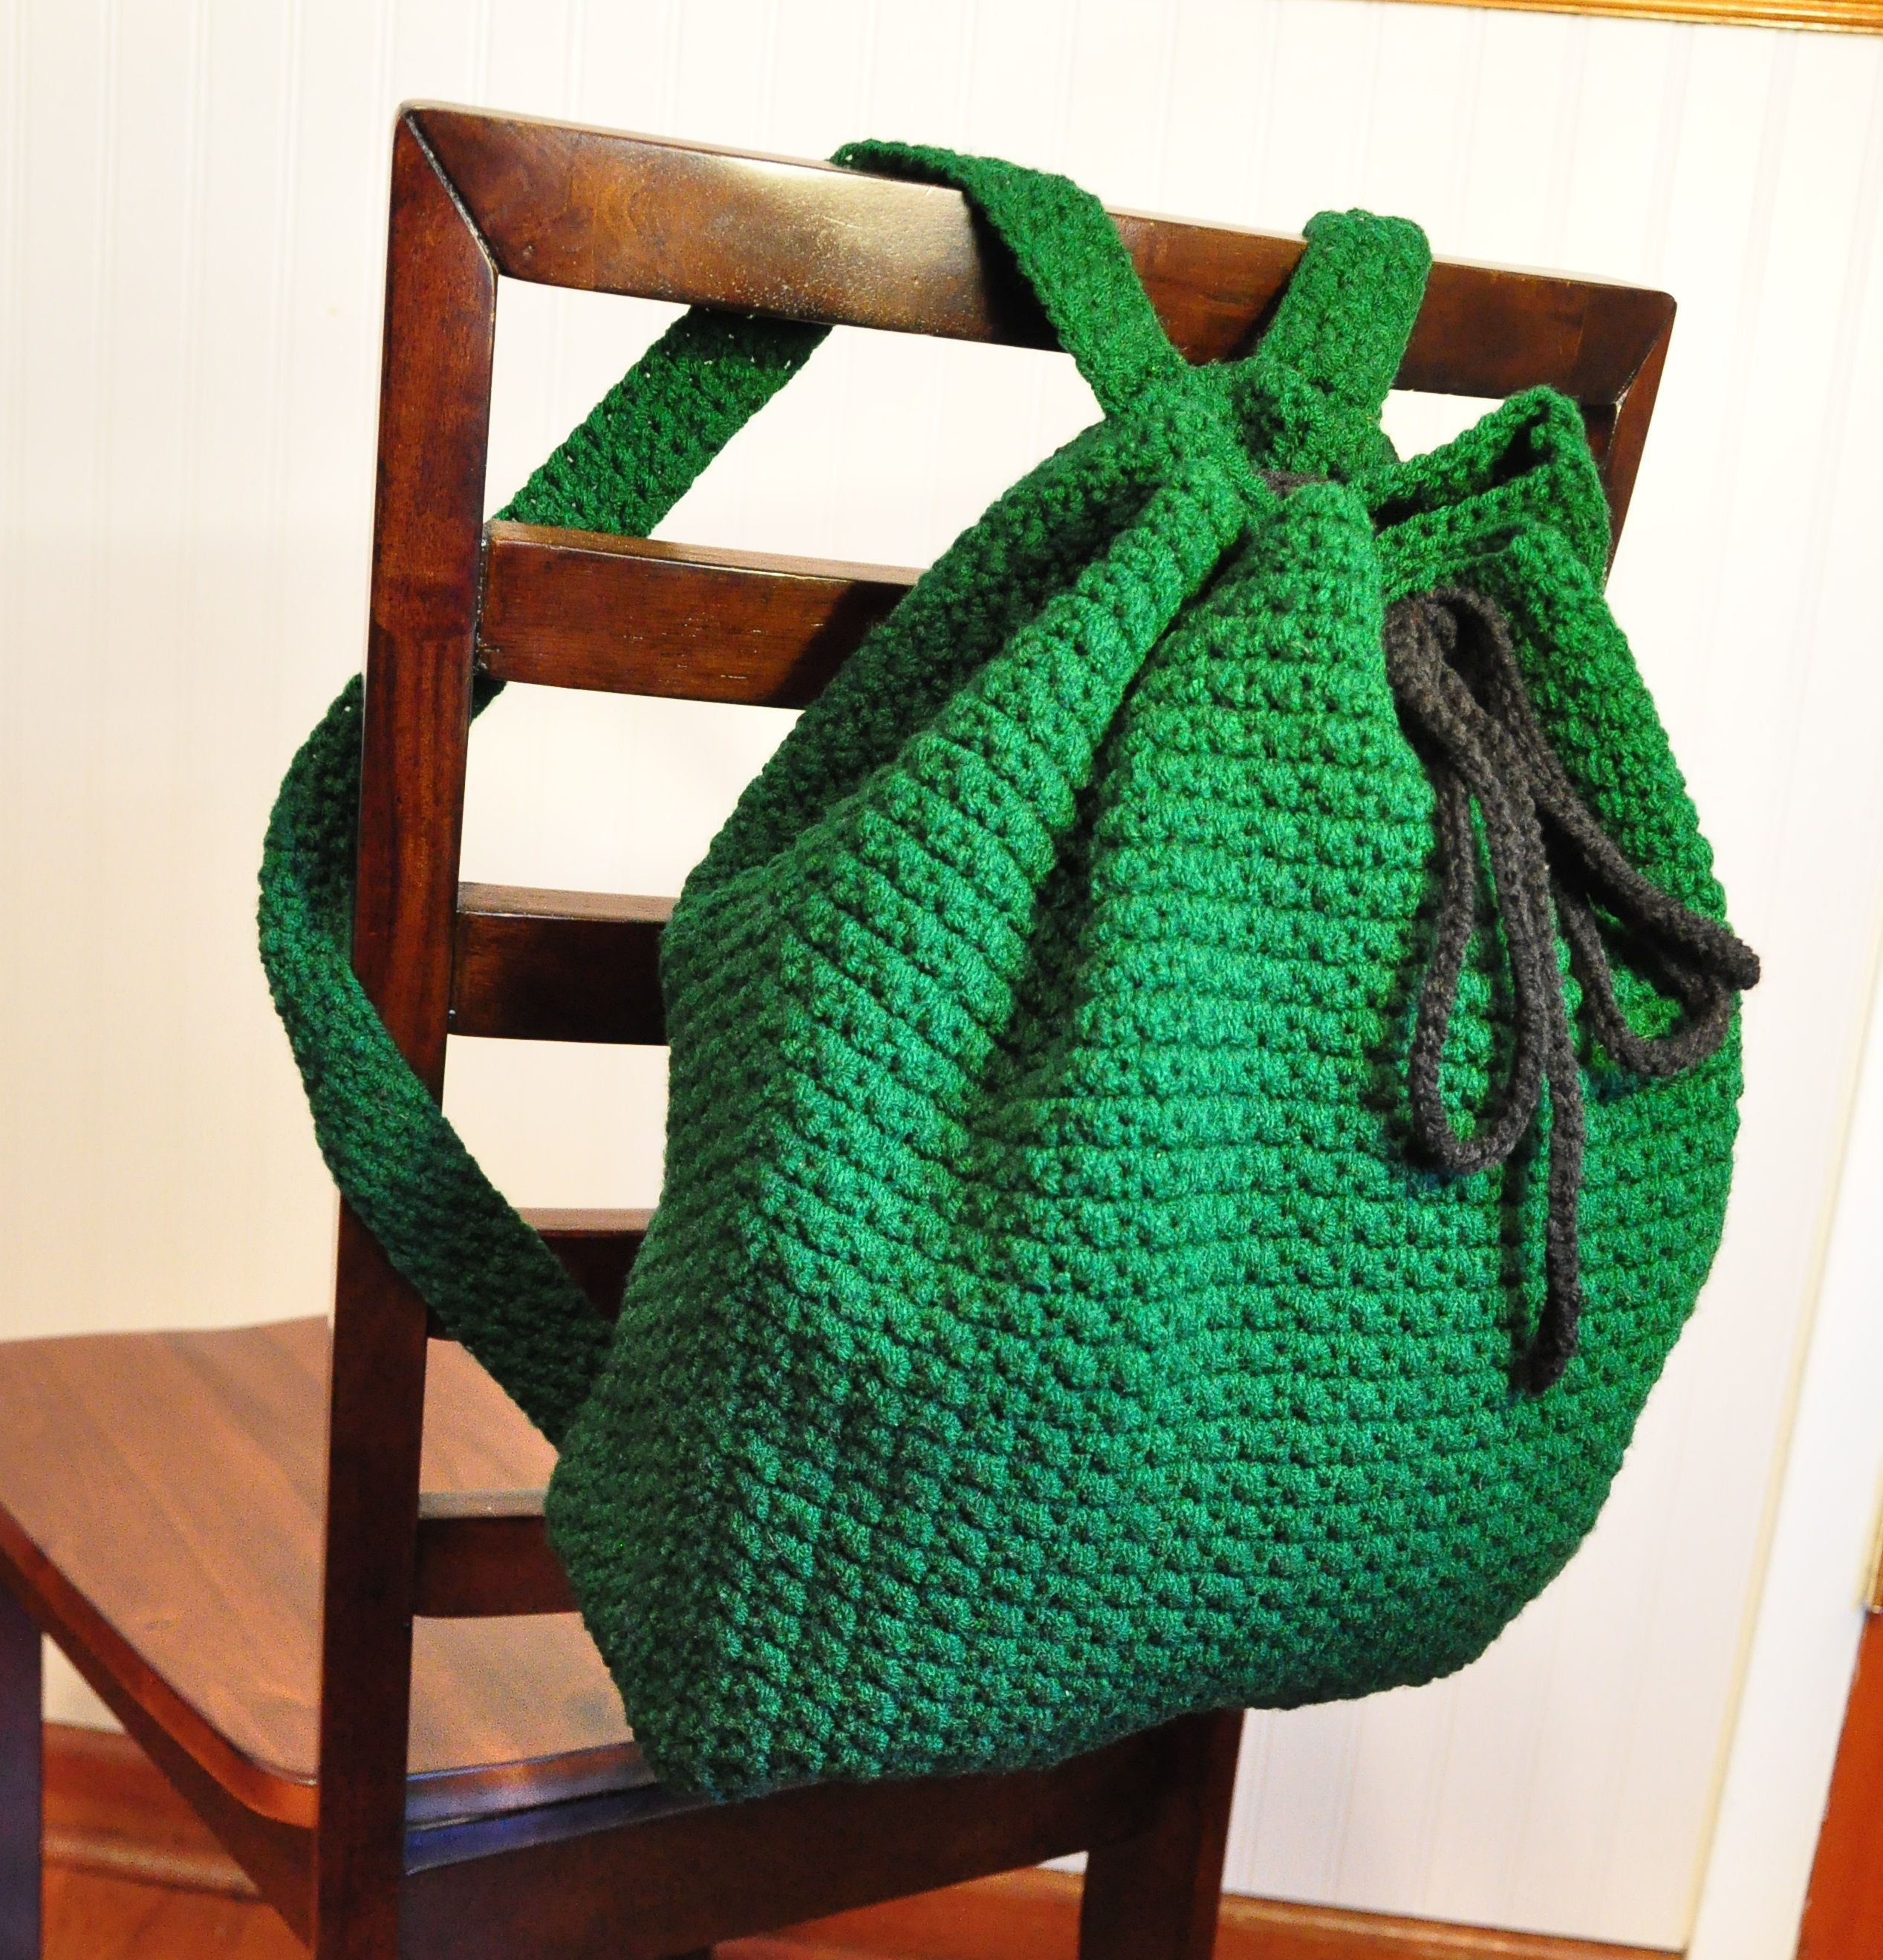 Large Crochet Backpack by La Araña Creations on Etsy. Sturdy handmade large crochet backpack that is ready to use for school and work! This item was created in a smoke-free environment. Backpack dimensions: Height: Approx 15 inches (38.1 cm) Width: Approx 15.25 inches (38.74 cm) Length of straps: Approx 18 inches (45.72 cm) each Length of drawstring: Approx 45.5 inches (115.57 cm)